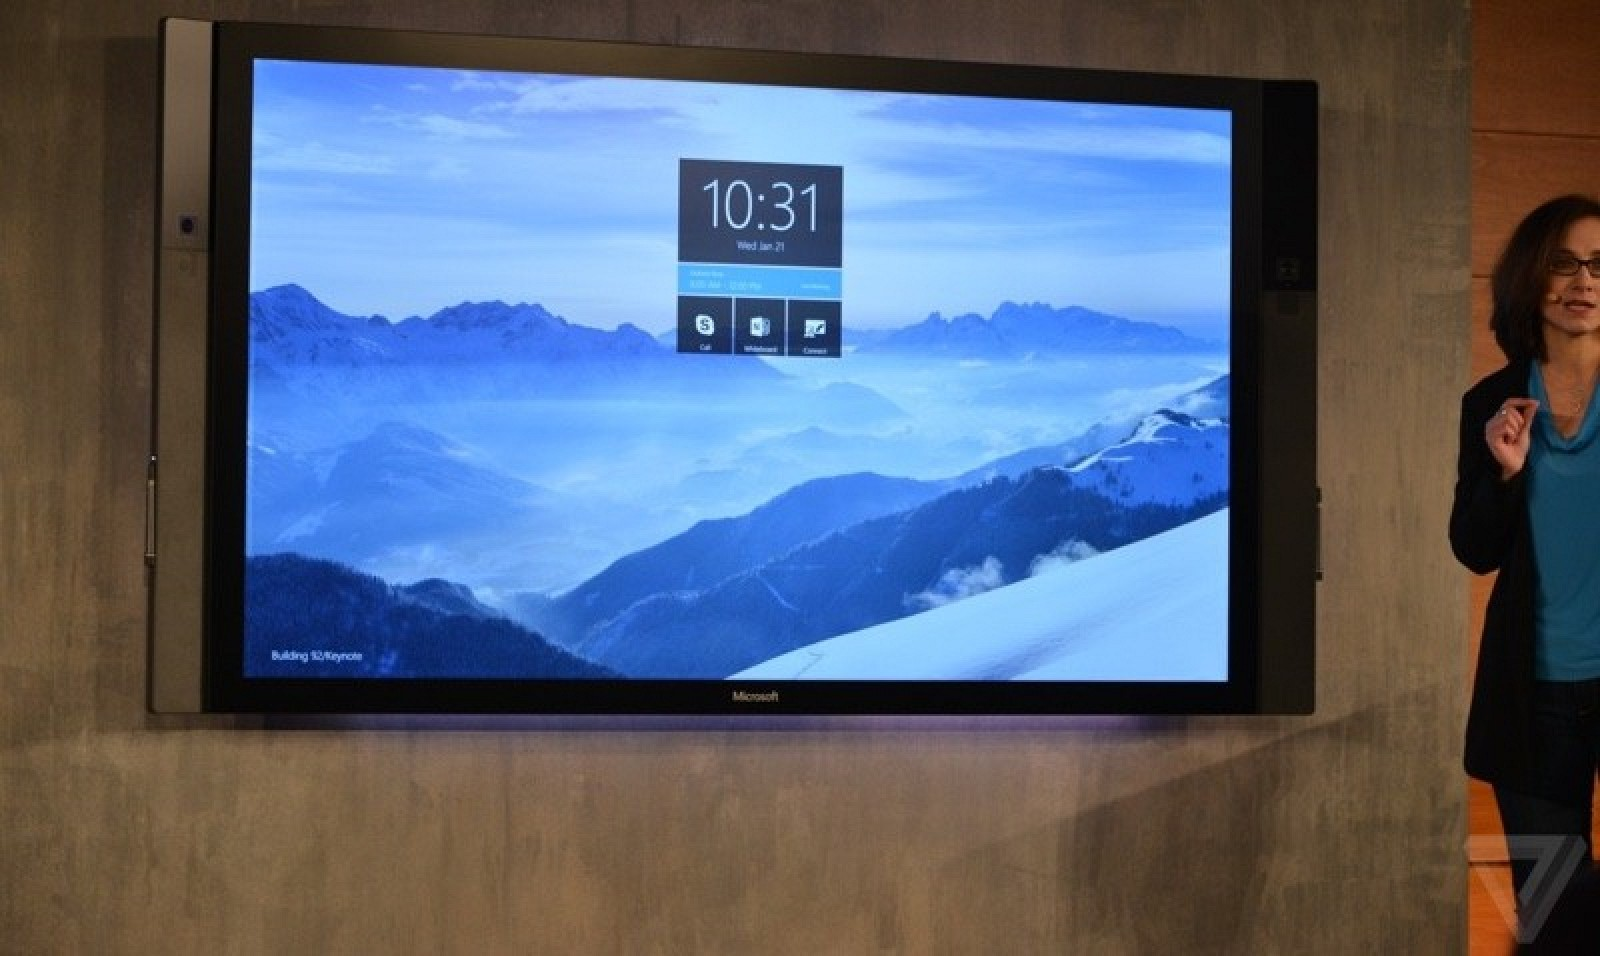 Black Friday Car Deals >> Microsoft Debuts 84-Inch Surface Hub Touch Display, HoloLens Augmented Reality Headset - MacRumors